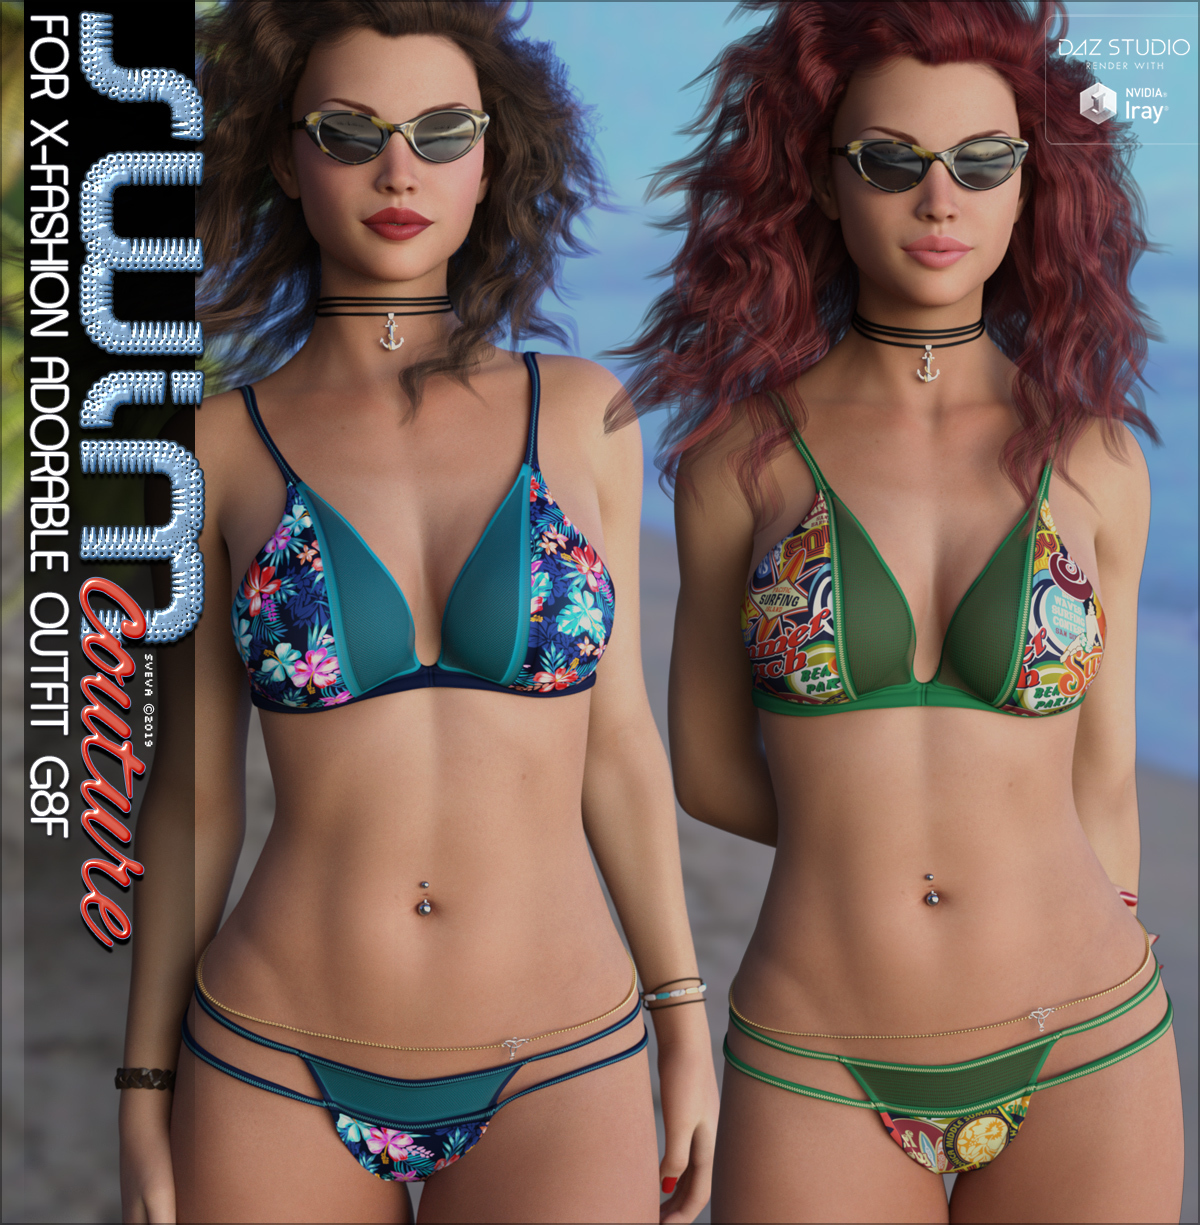 SWIM Couture for X-Fashion Adorable Outfit